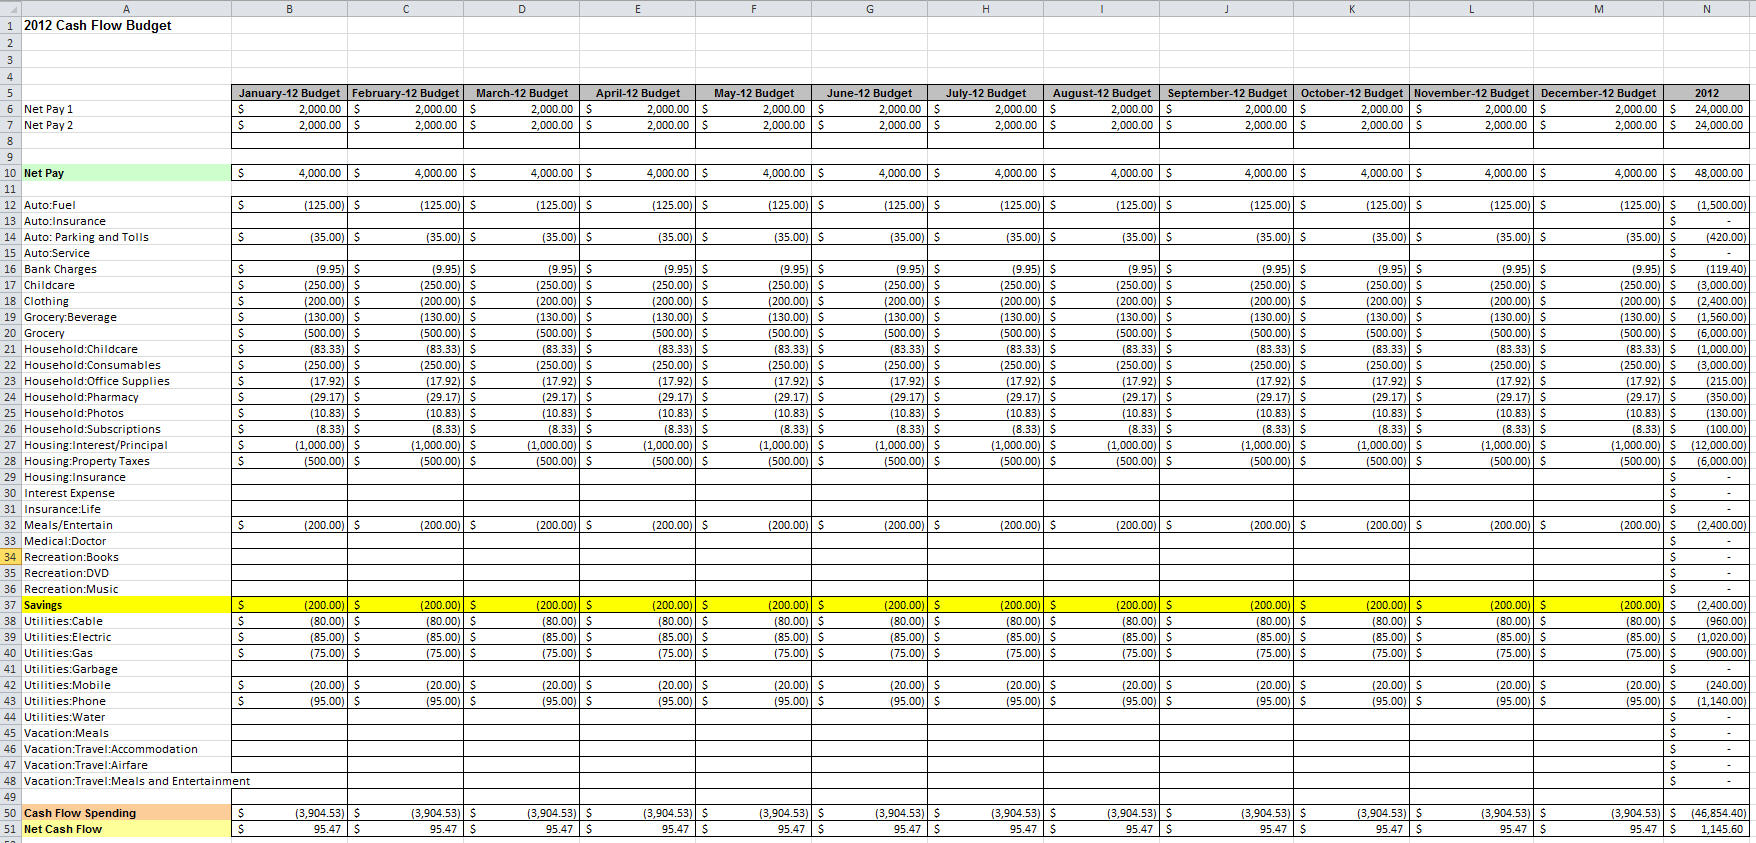 Family Cash Flow Budget Worksheet